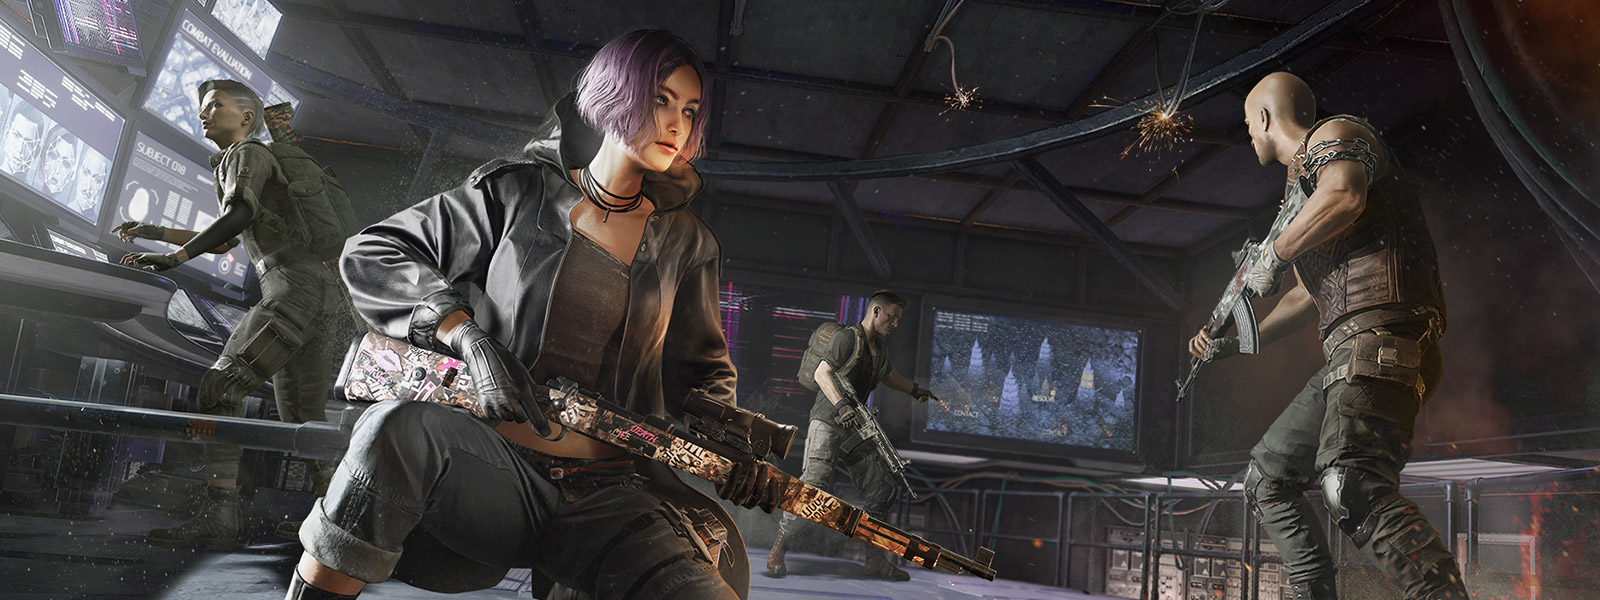 Four characters gather with guns in a warehouse with tech in the background.